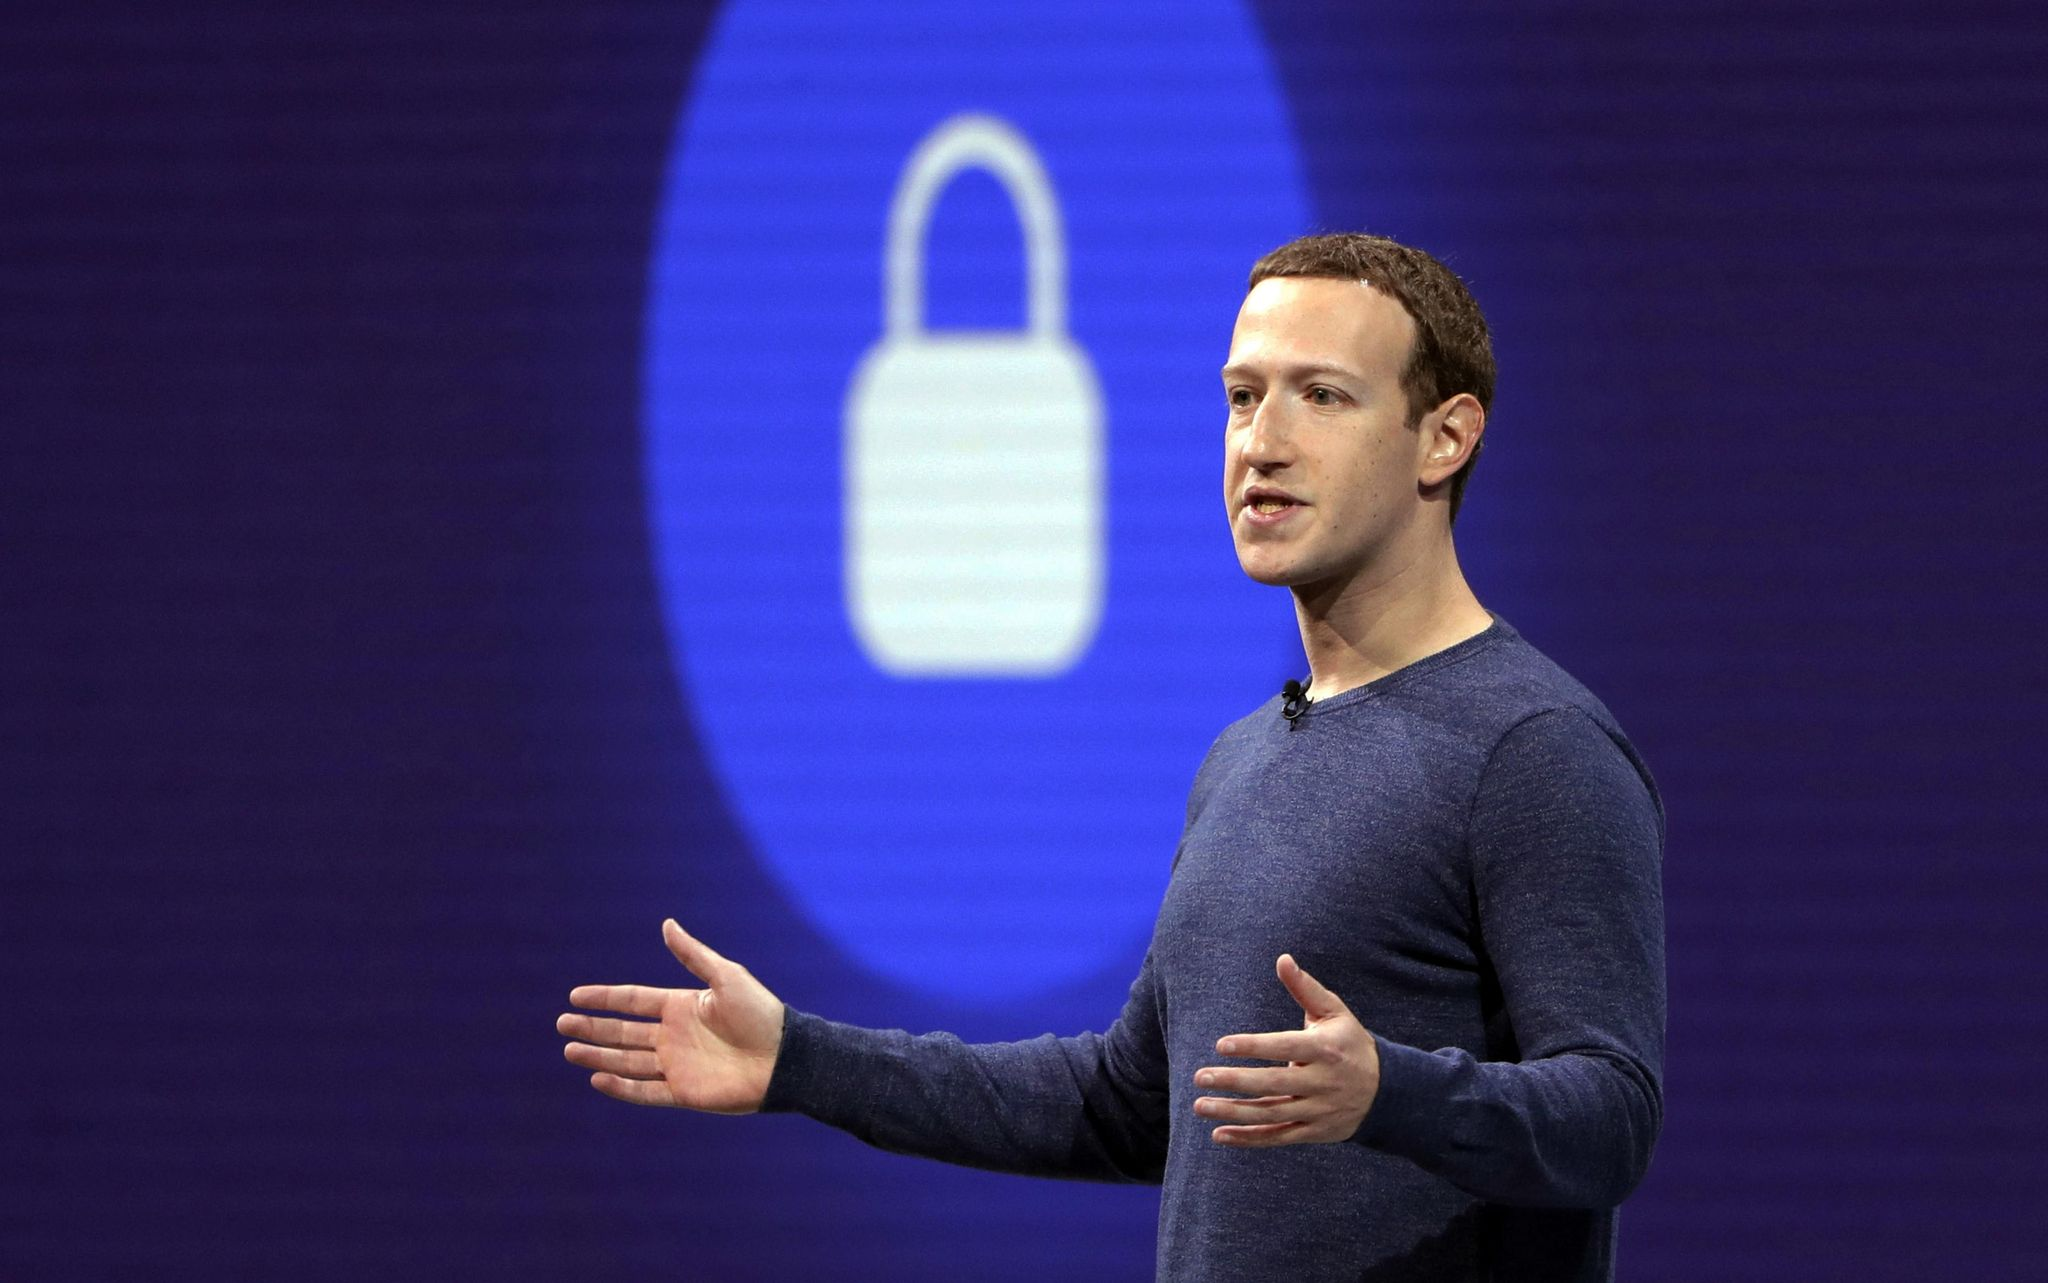 Mark Zuckerberg to hire 'seasoned journalists' to curate Facebook news section